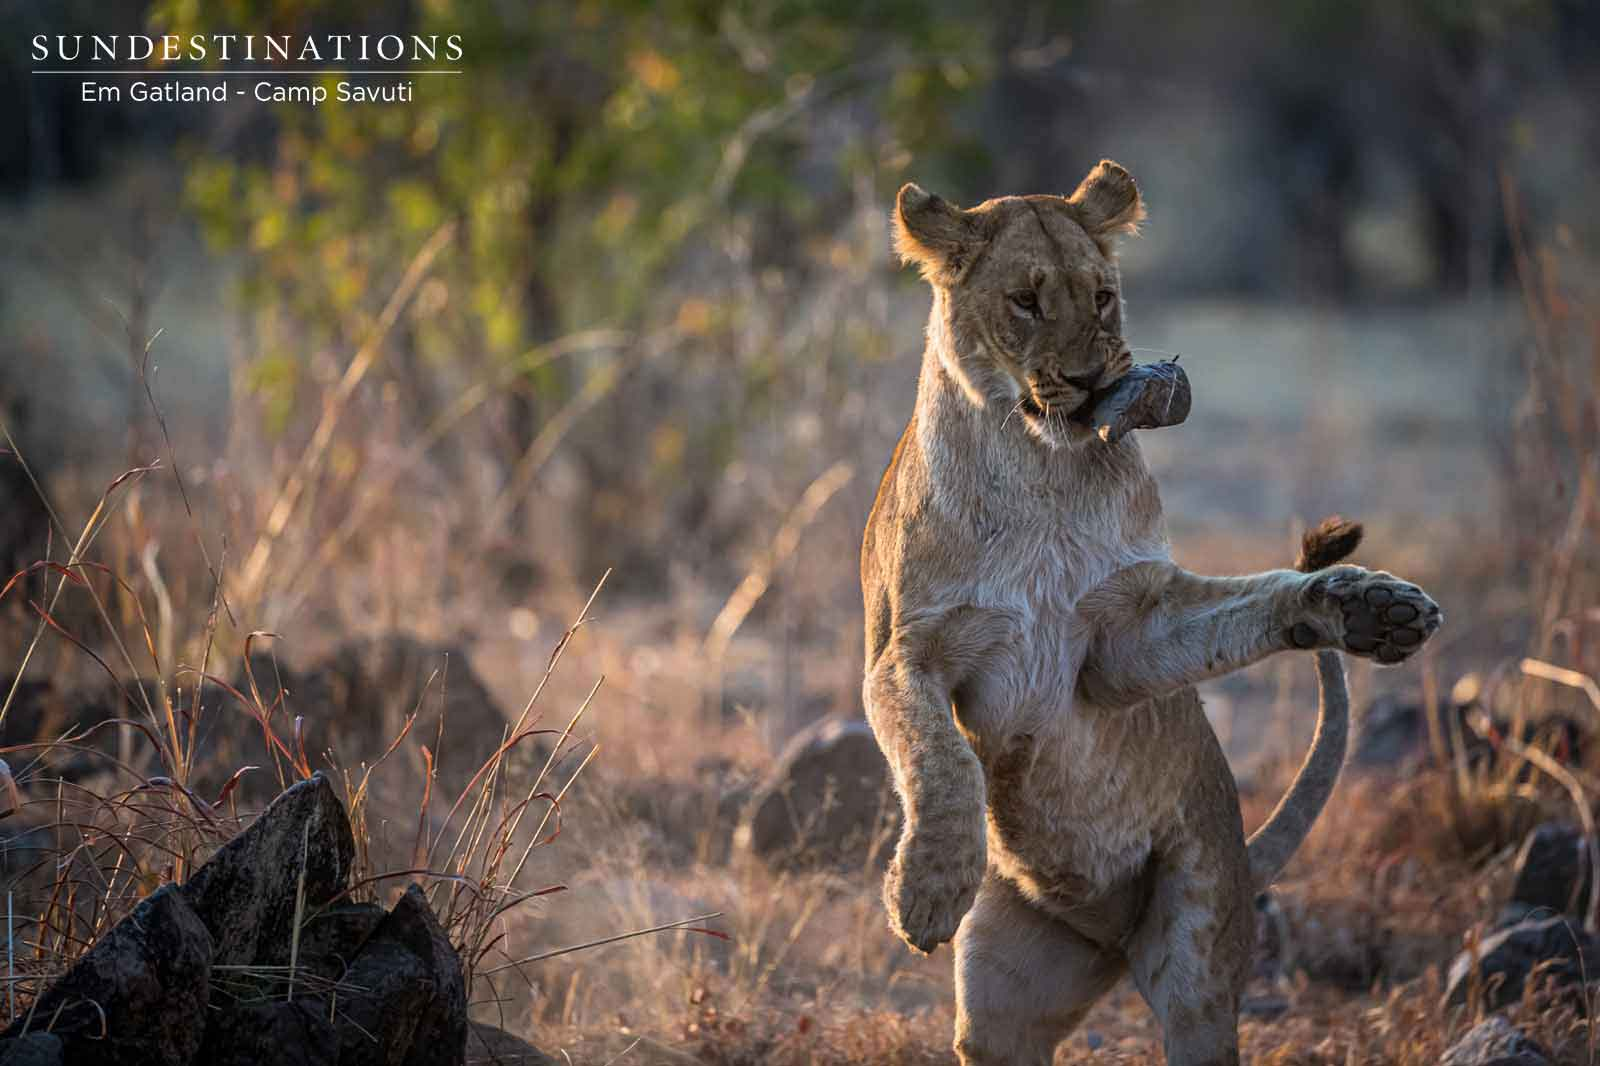 Photographing the Predator Action at Camp Savuti